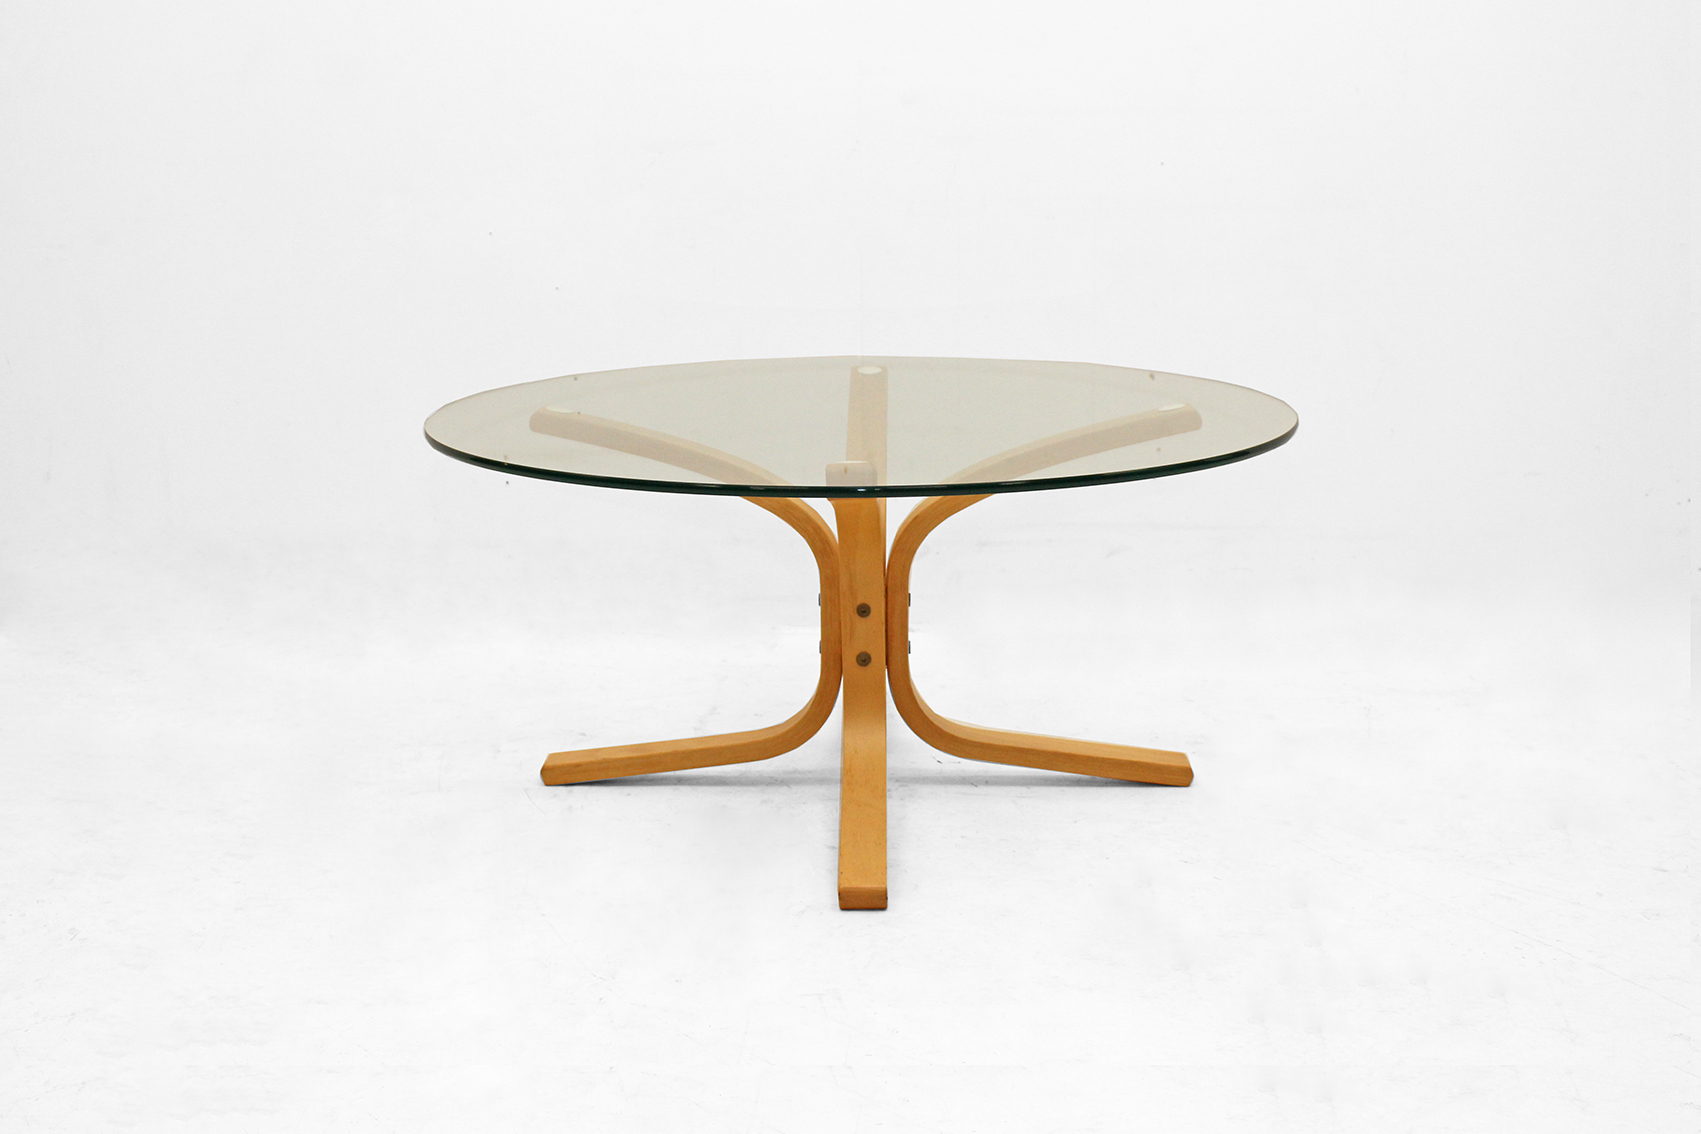 Swedisch coffeetable from the seventies